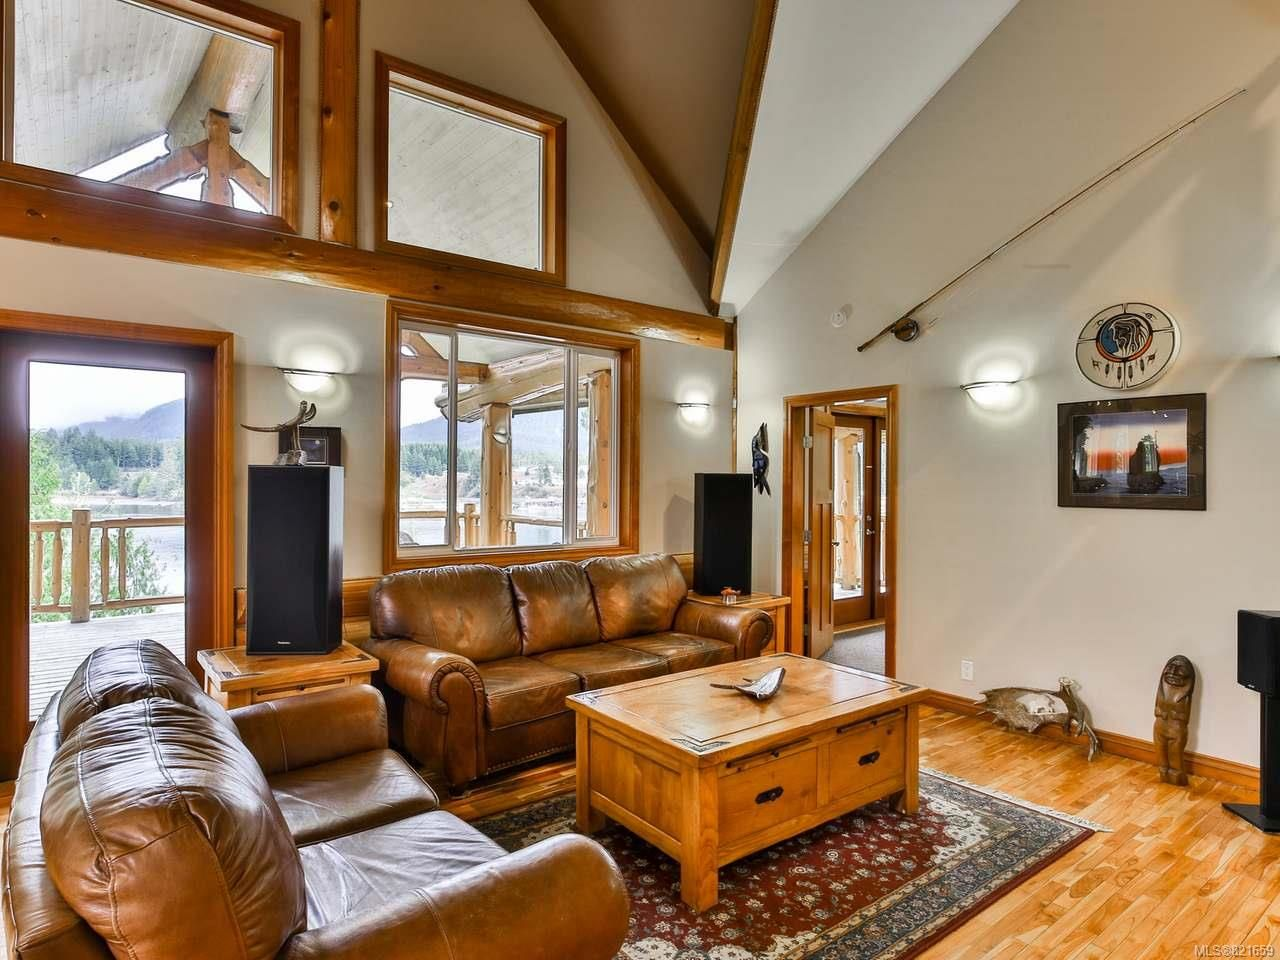 Photo 15: Photos: 1049 Helen Rd in UCLUELET: PA Ucluelet House for sale (Port Alberni)  : MLS®# 821659